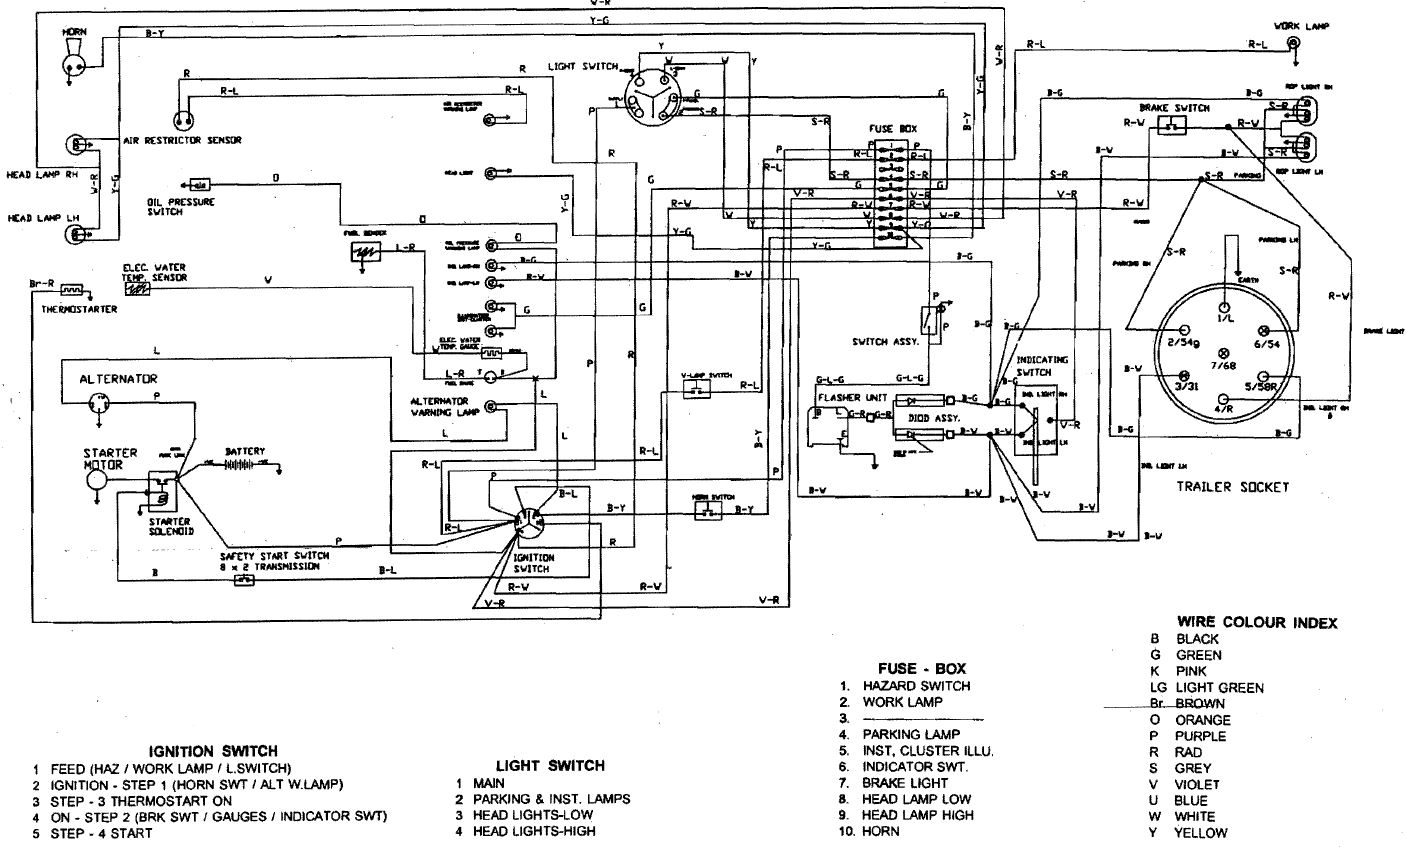 20158463319_b82d524c3d_o ignition switch wiring diagram PTO Switch Wiring Diagram for Massey Furgeson at highcare.asia